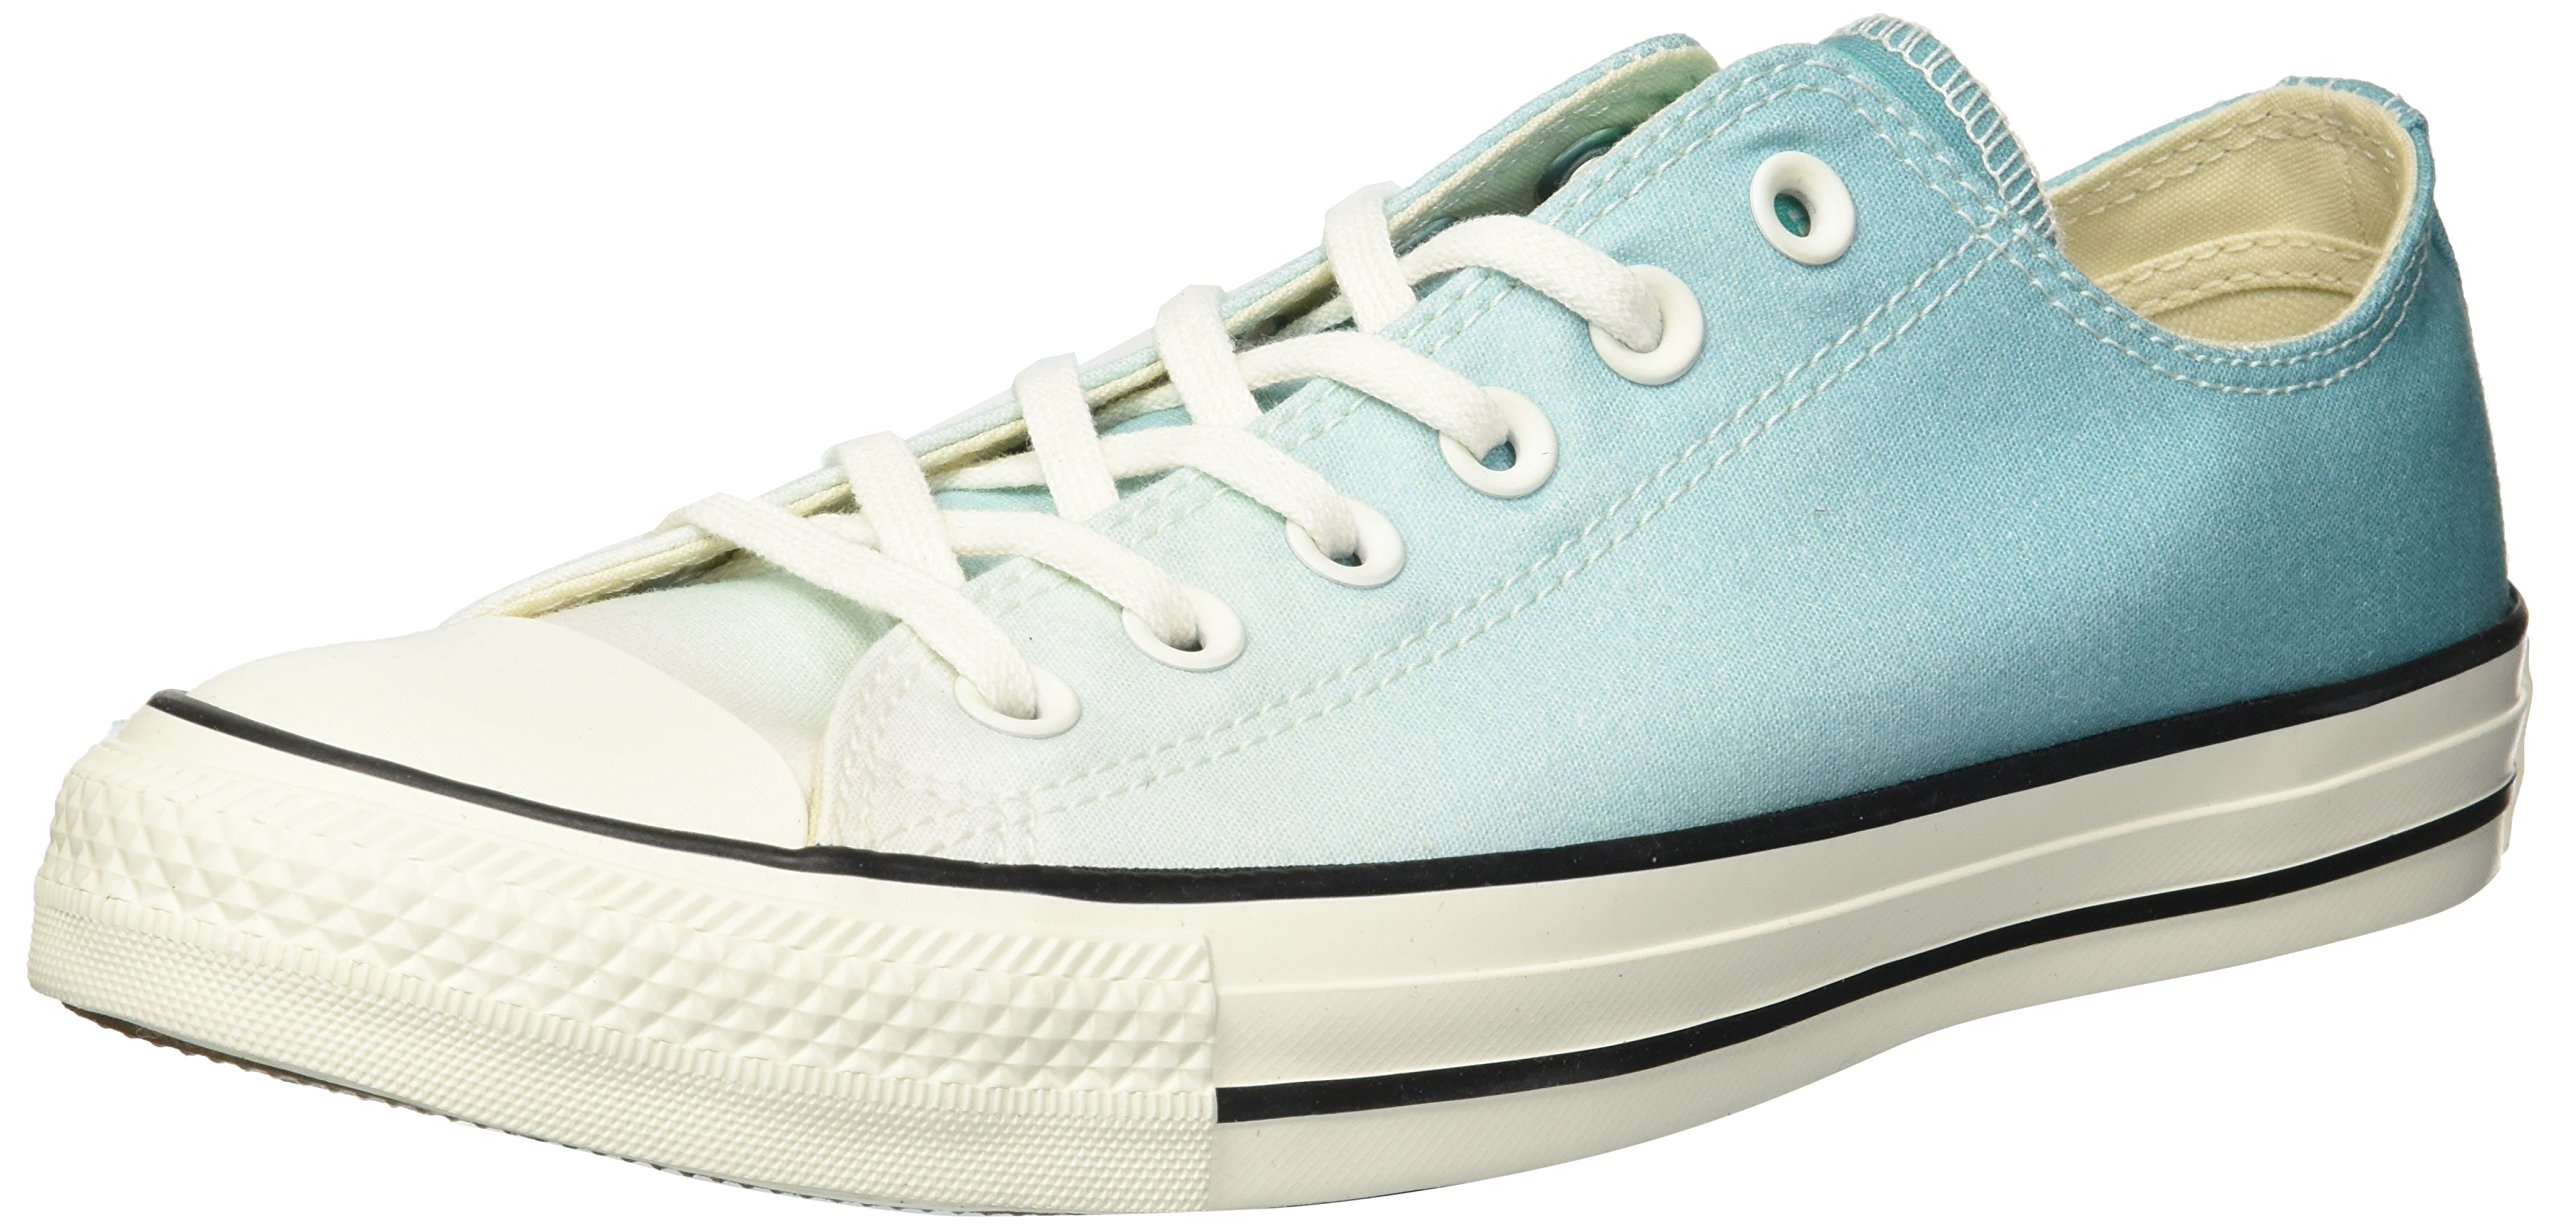 Converse Women's Chuck Taylor All Star Ombre Low TOP Sneaker, Pure Teal egret, 7.5 M US by Converse (Image #1)